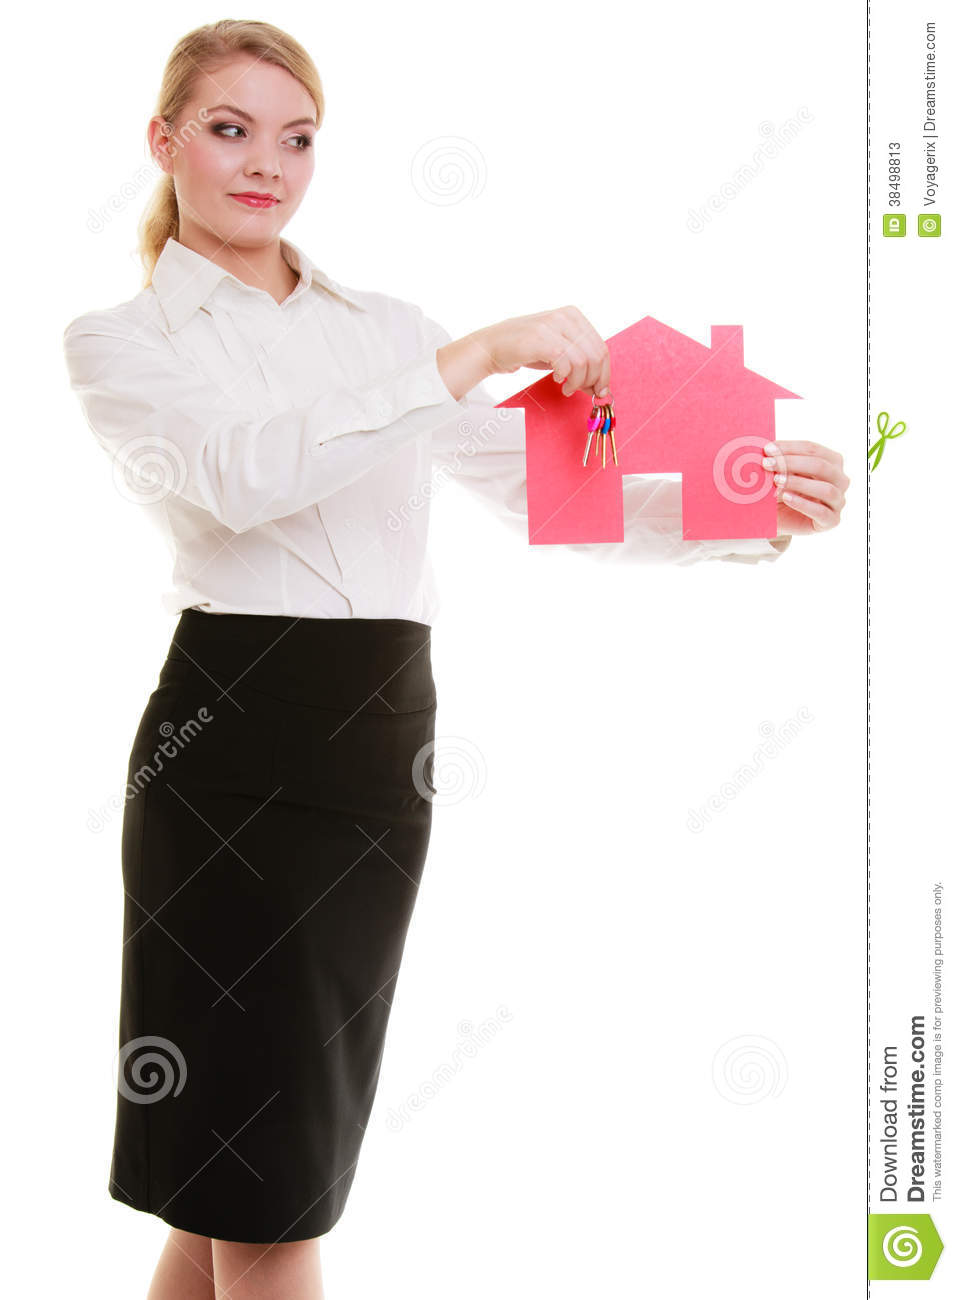 essay on real estate business